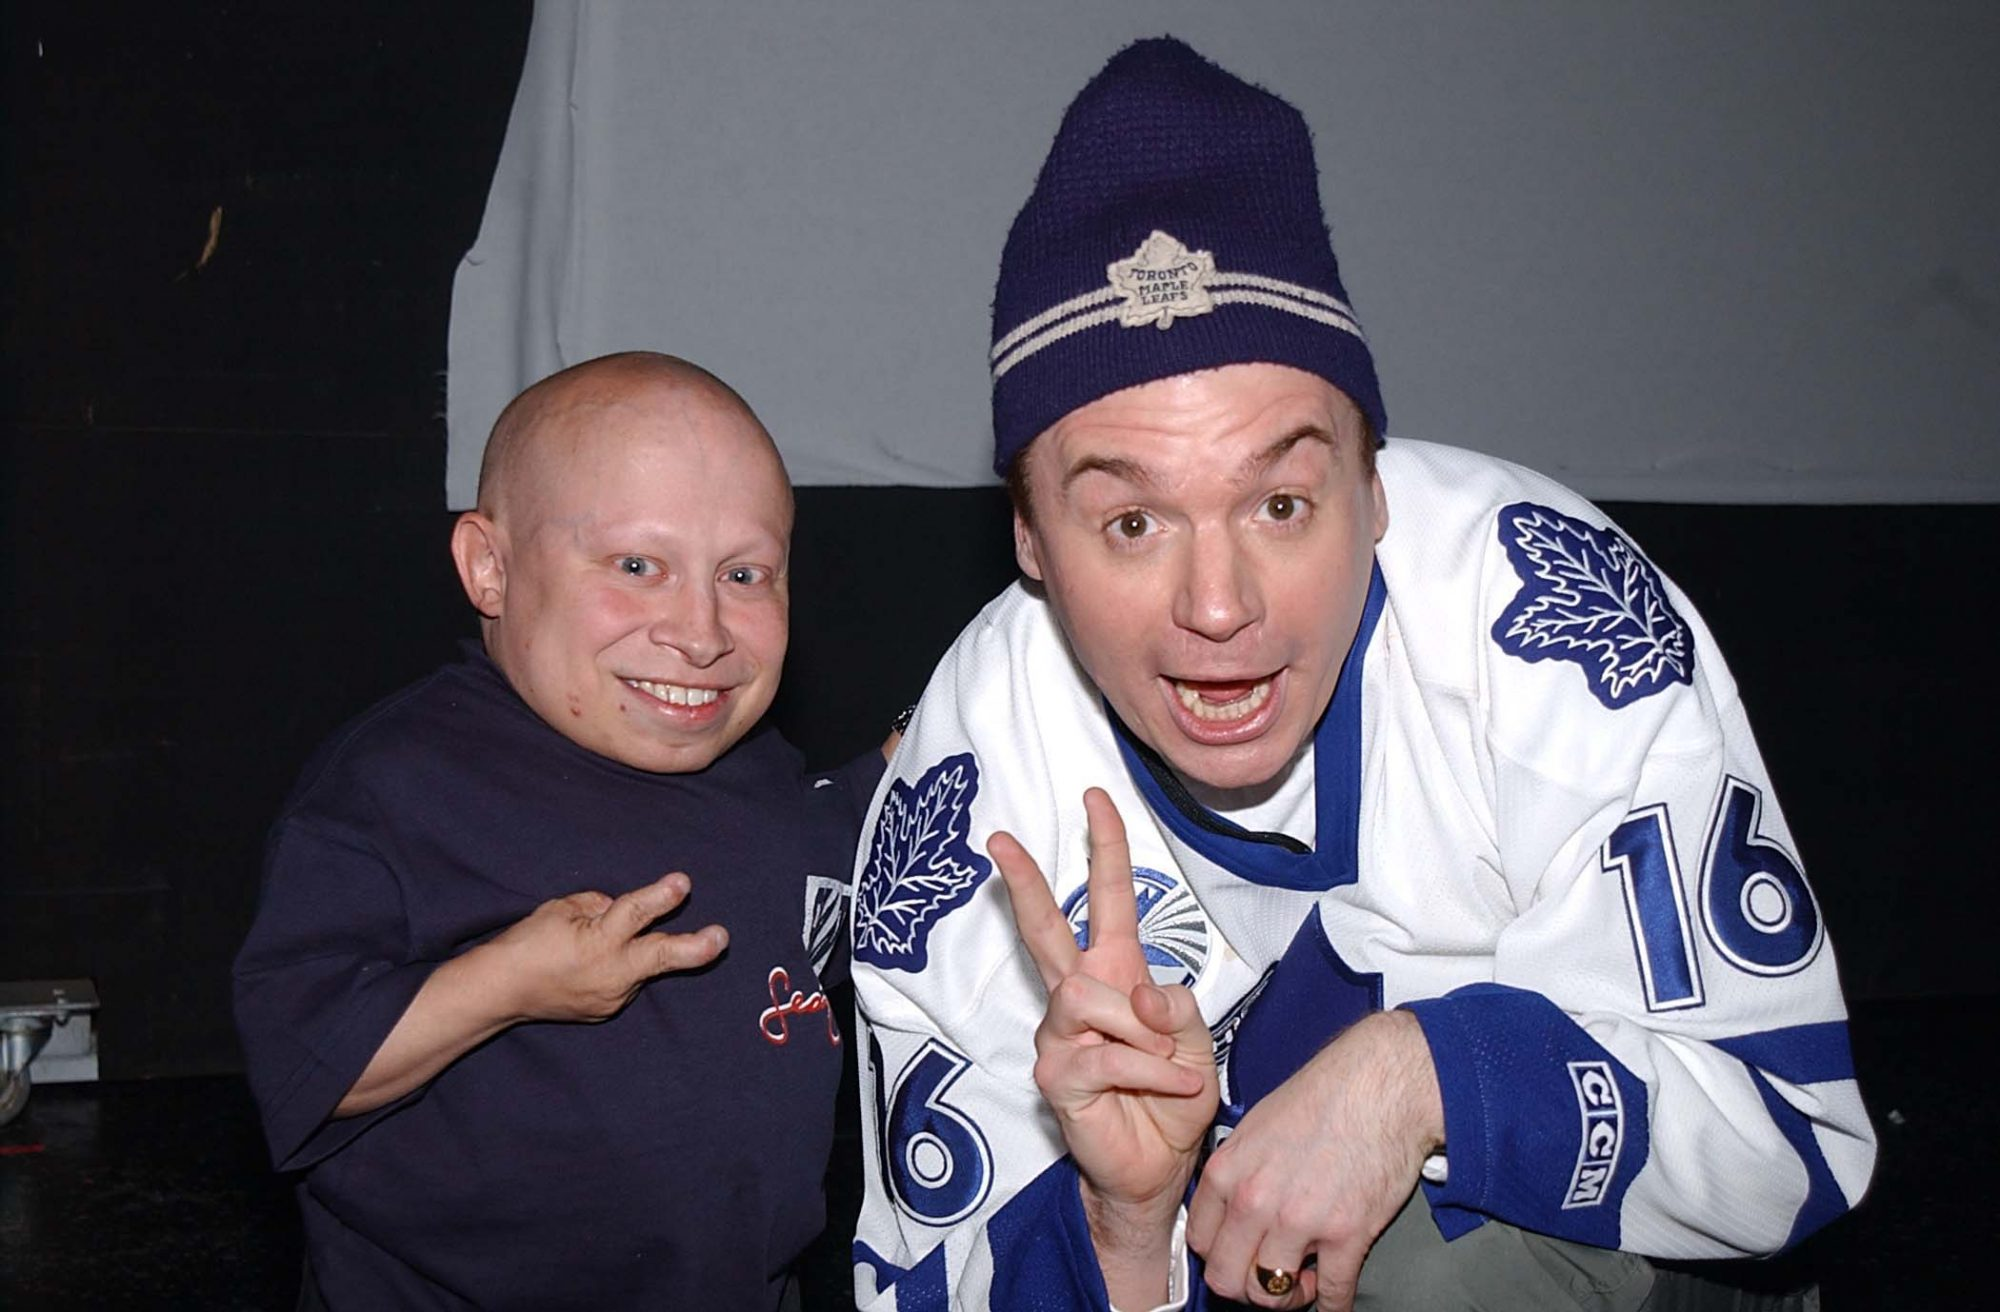 Picture of Verne Troyer Mike Myers